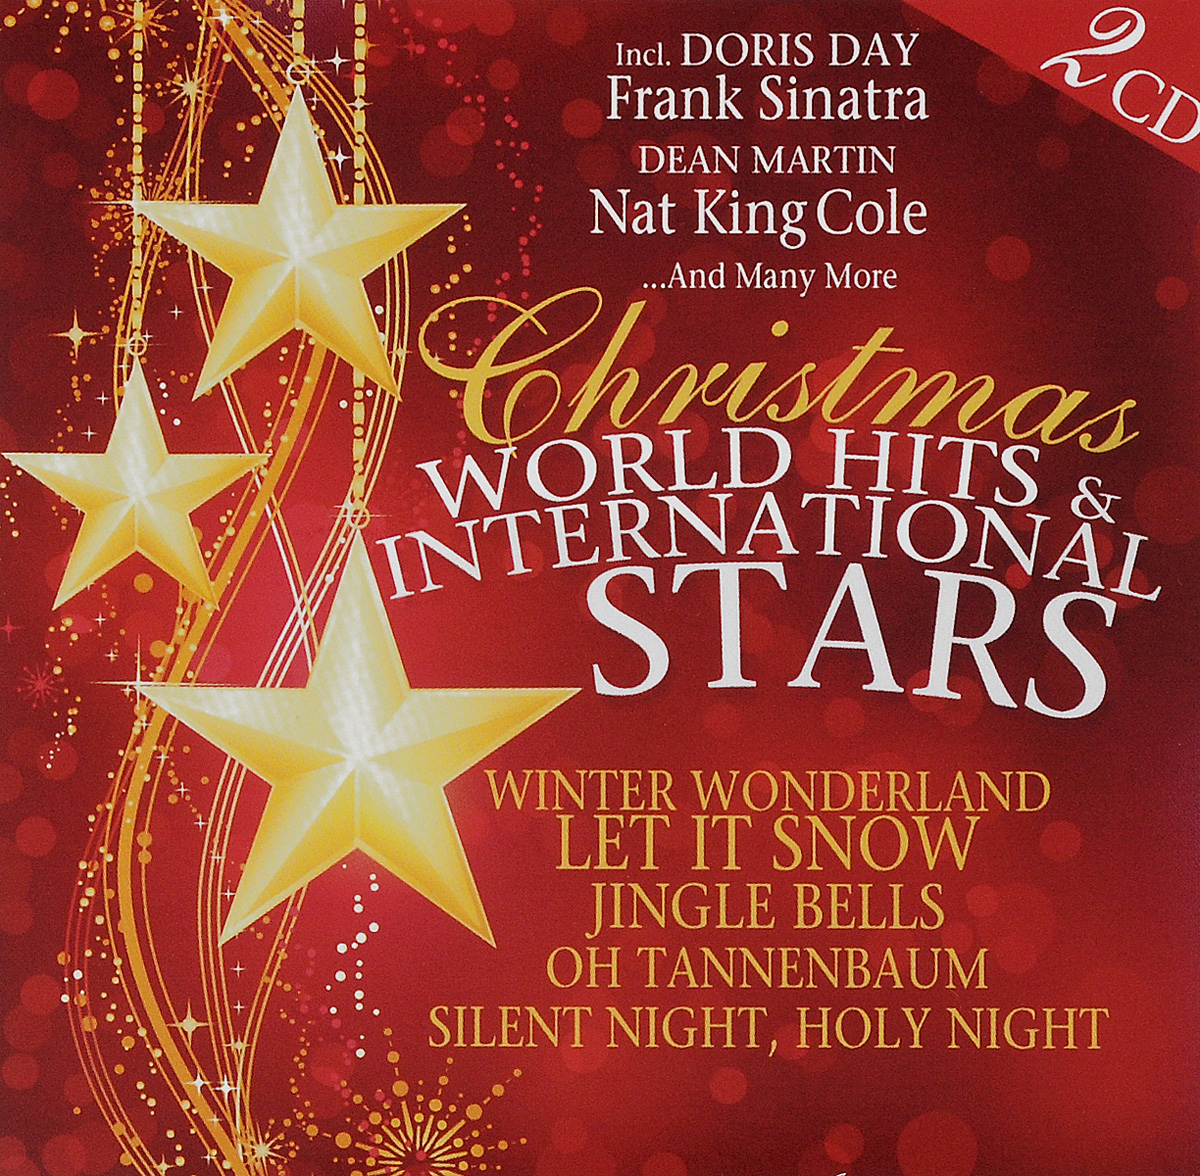 Фрэнк Синатра Christmas World Hits & Internationale Stars (2 CD) массимо фарао piano world hits 2 cd